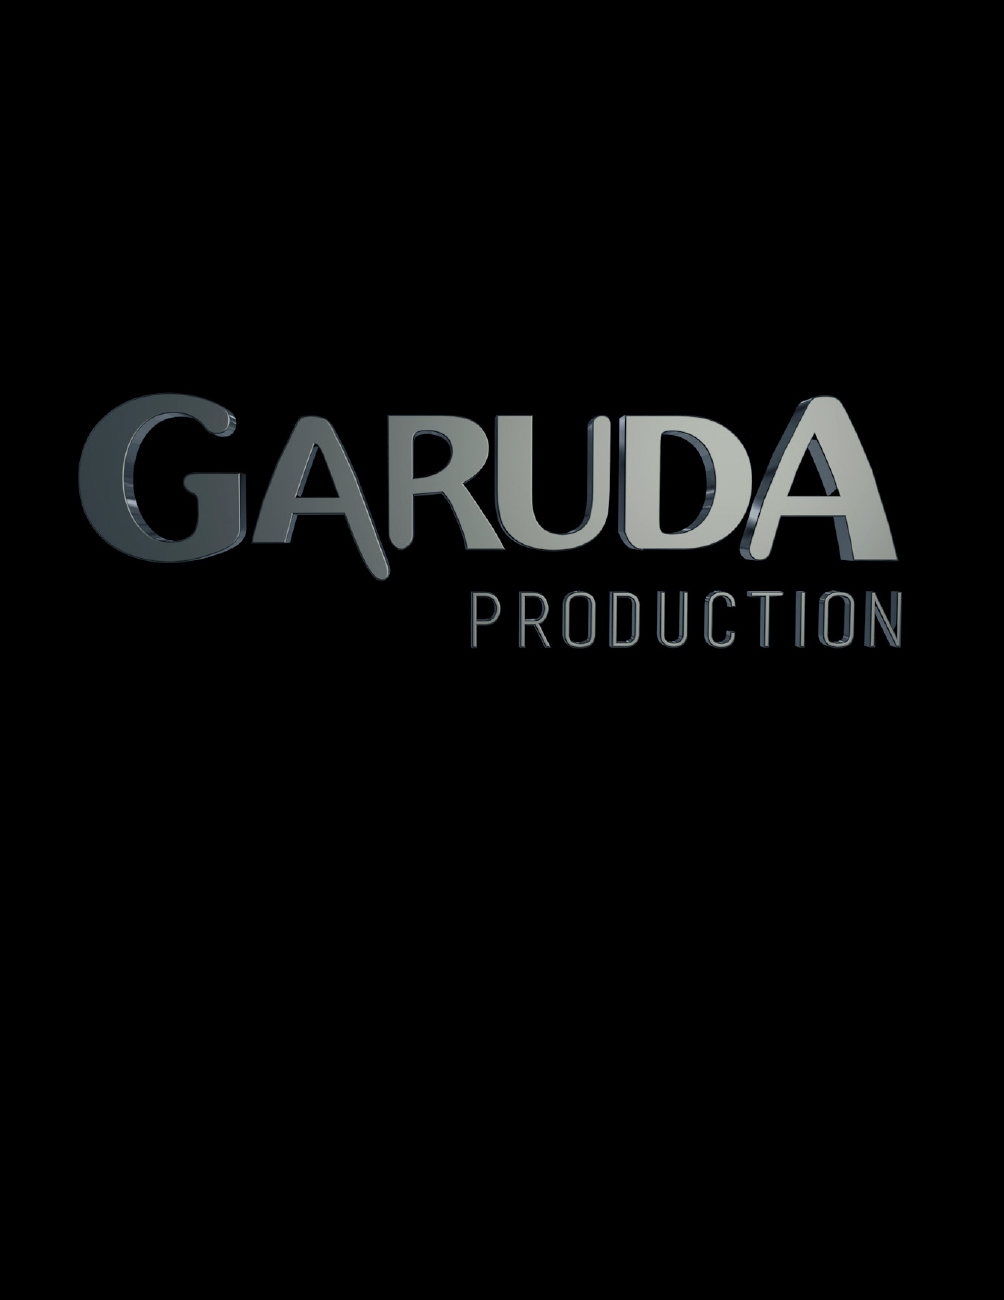 GARUDA production